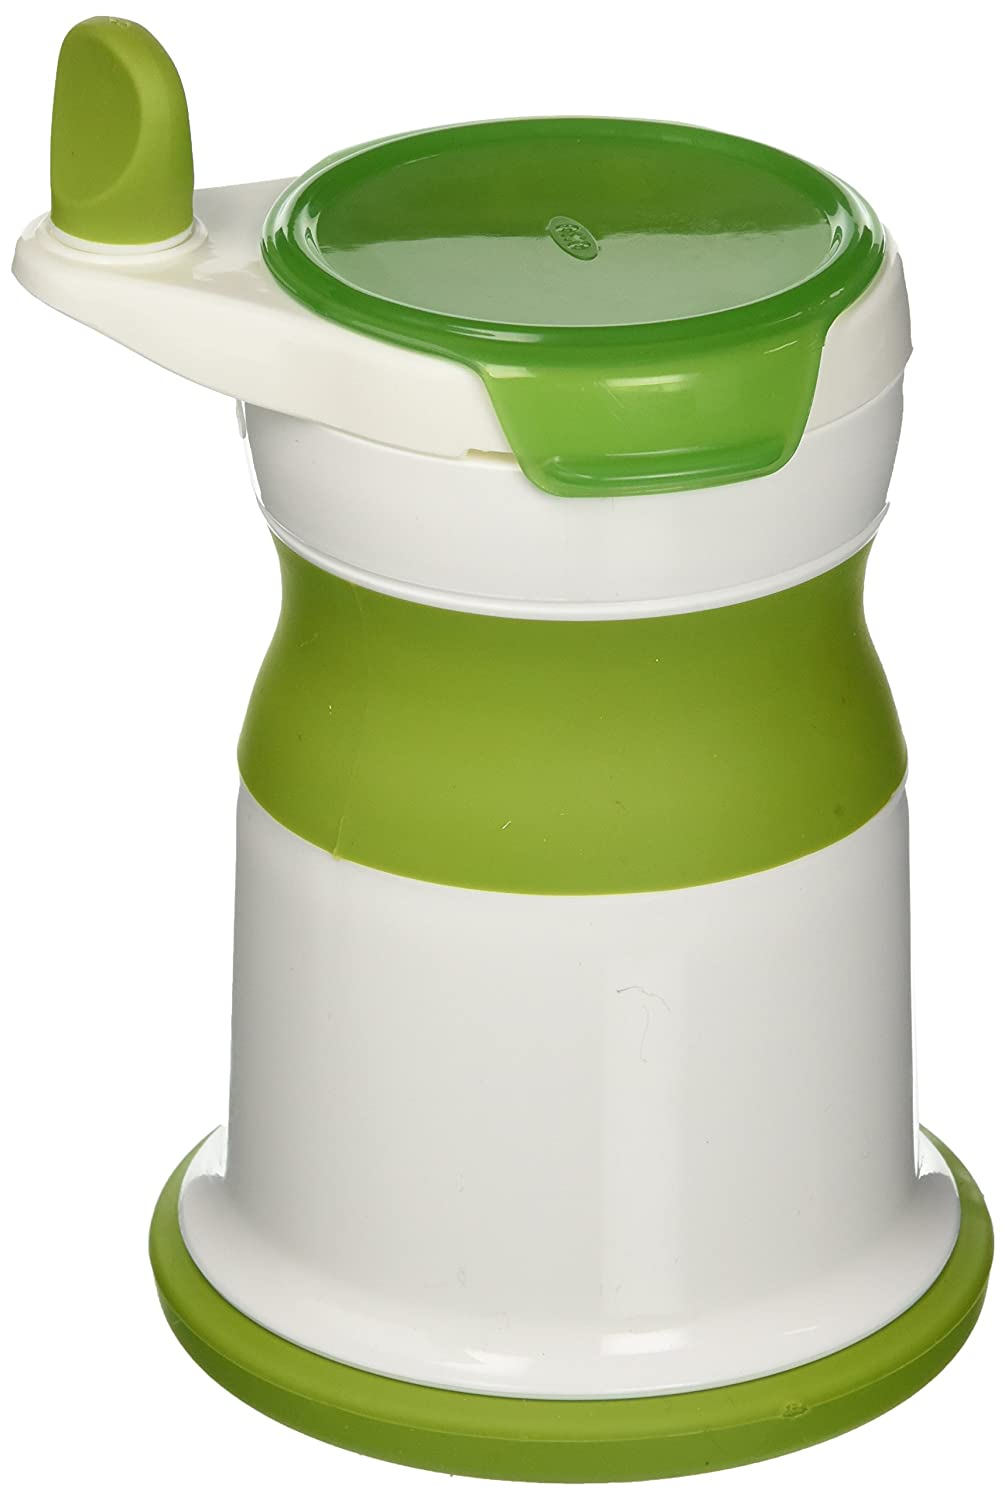 Top 9 Best Baby Food Makers (2020 Reviews) 3